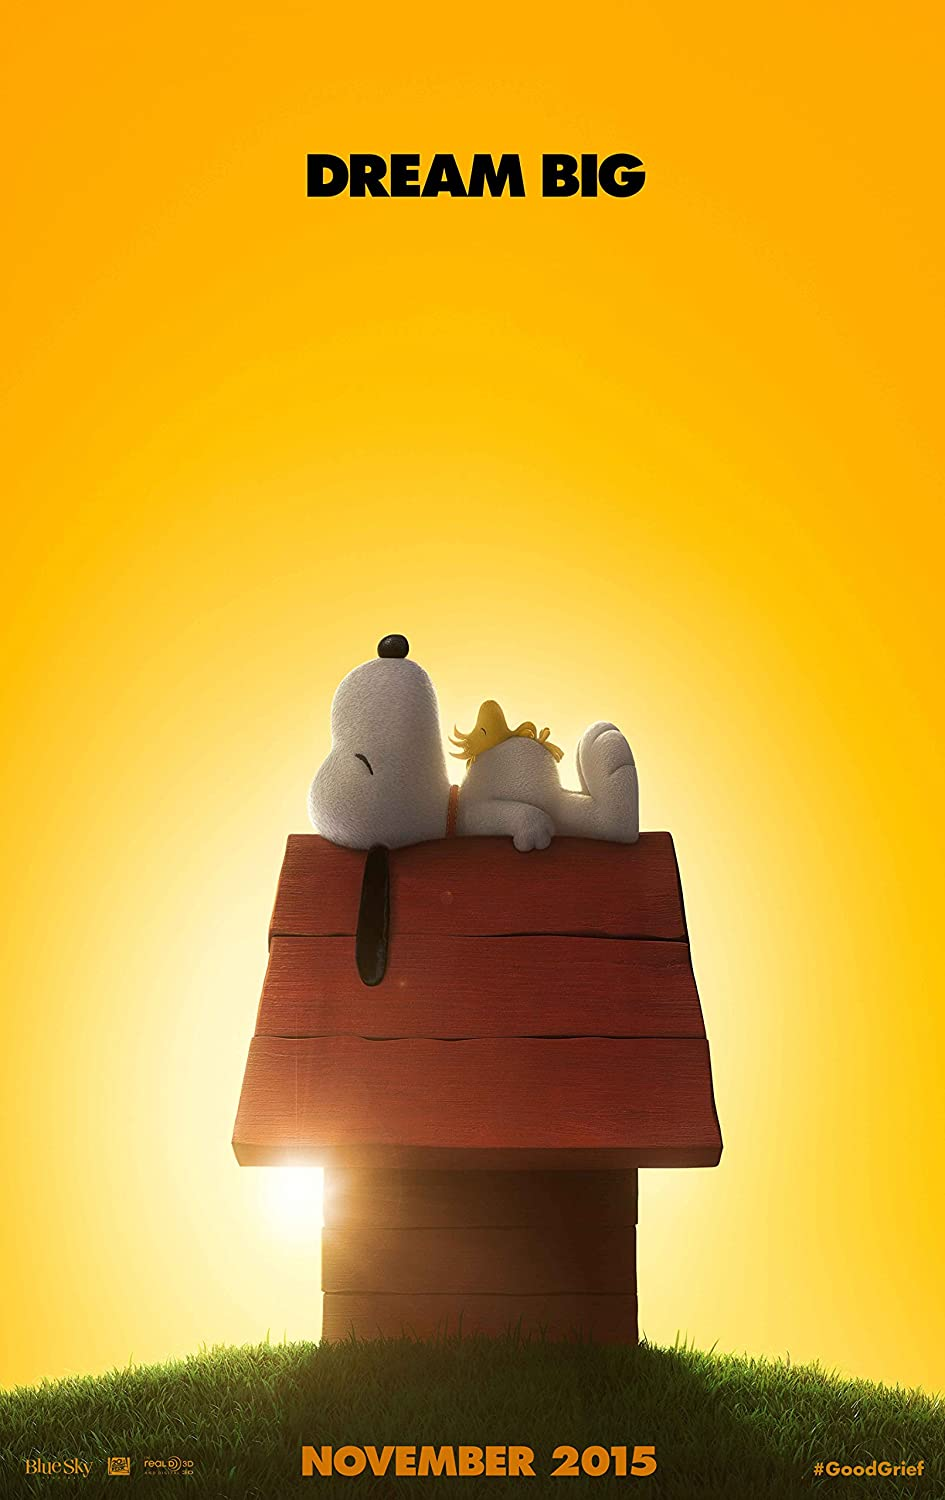 The Peanuts Movie - Poster: (24 x 36 Inches) - Glossy Photo Paper (Thick 8 Mil), Snoopy, Charlie Brown